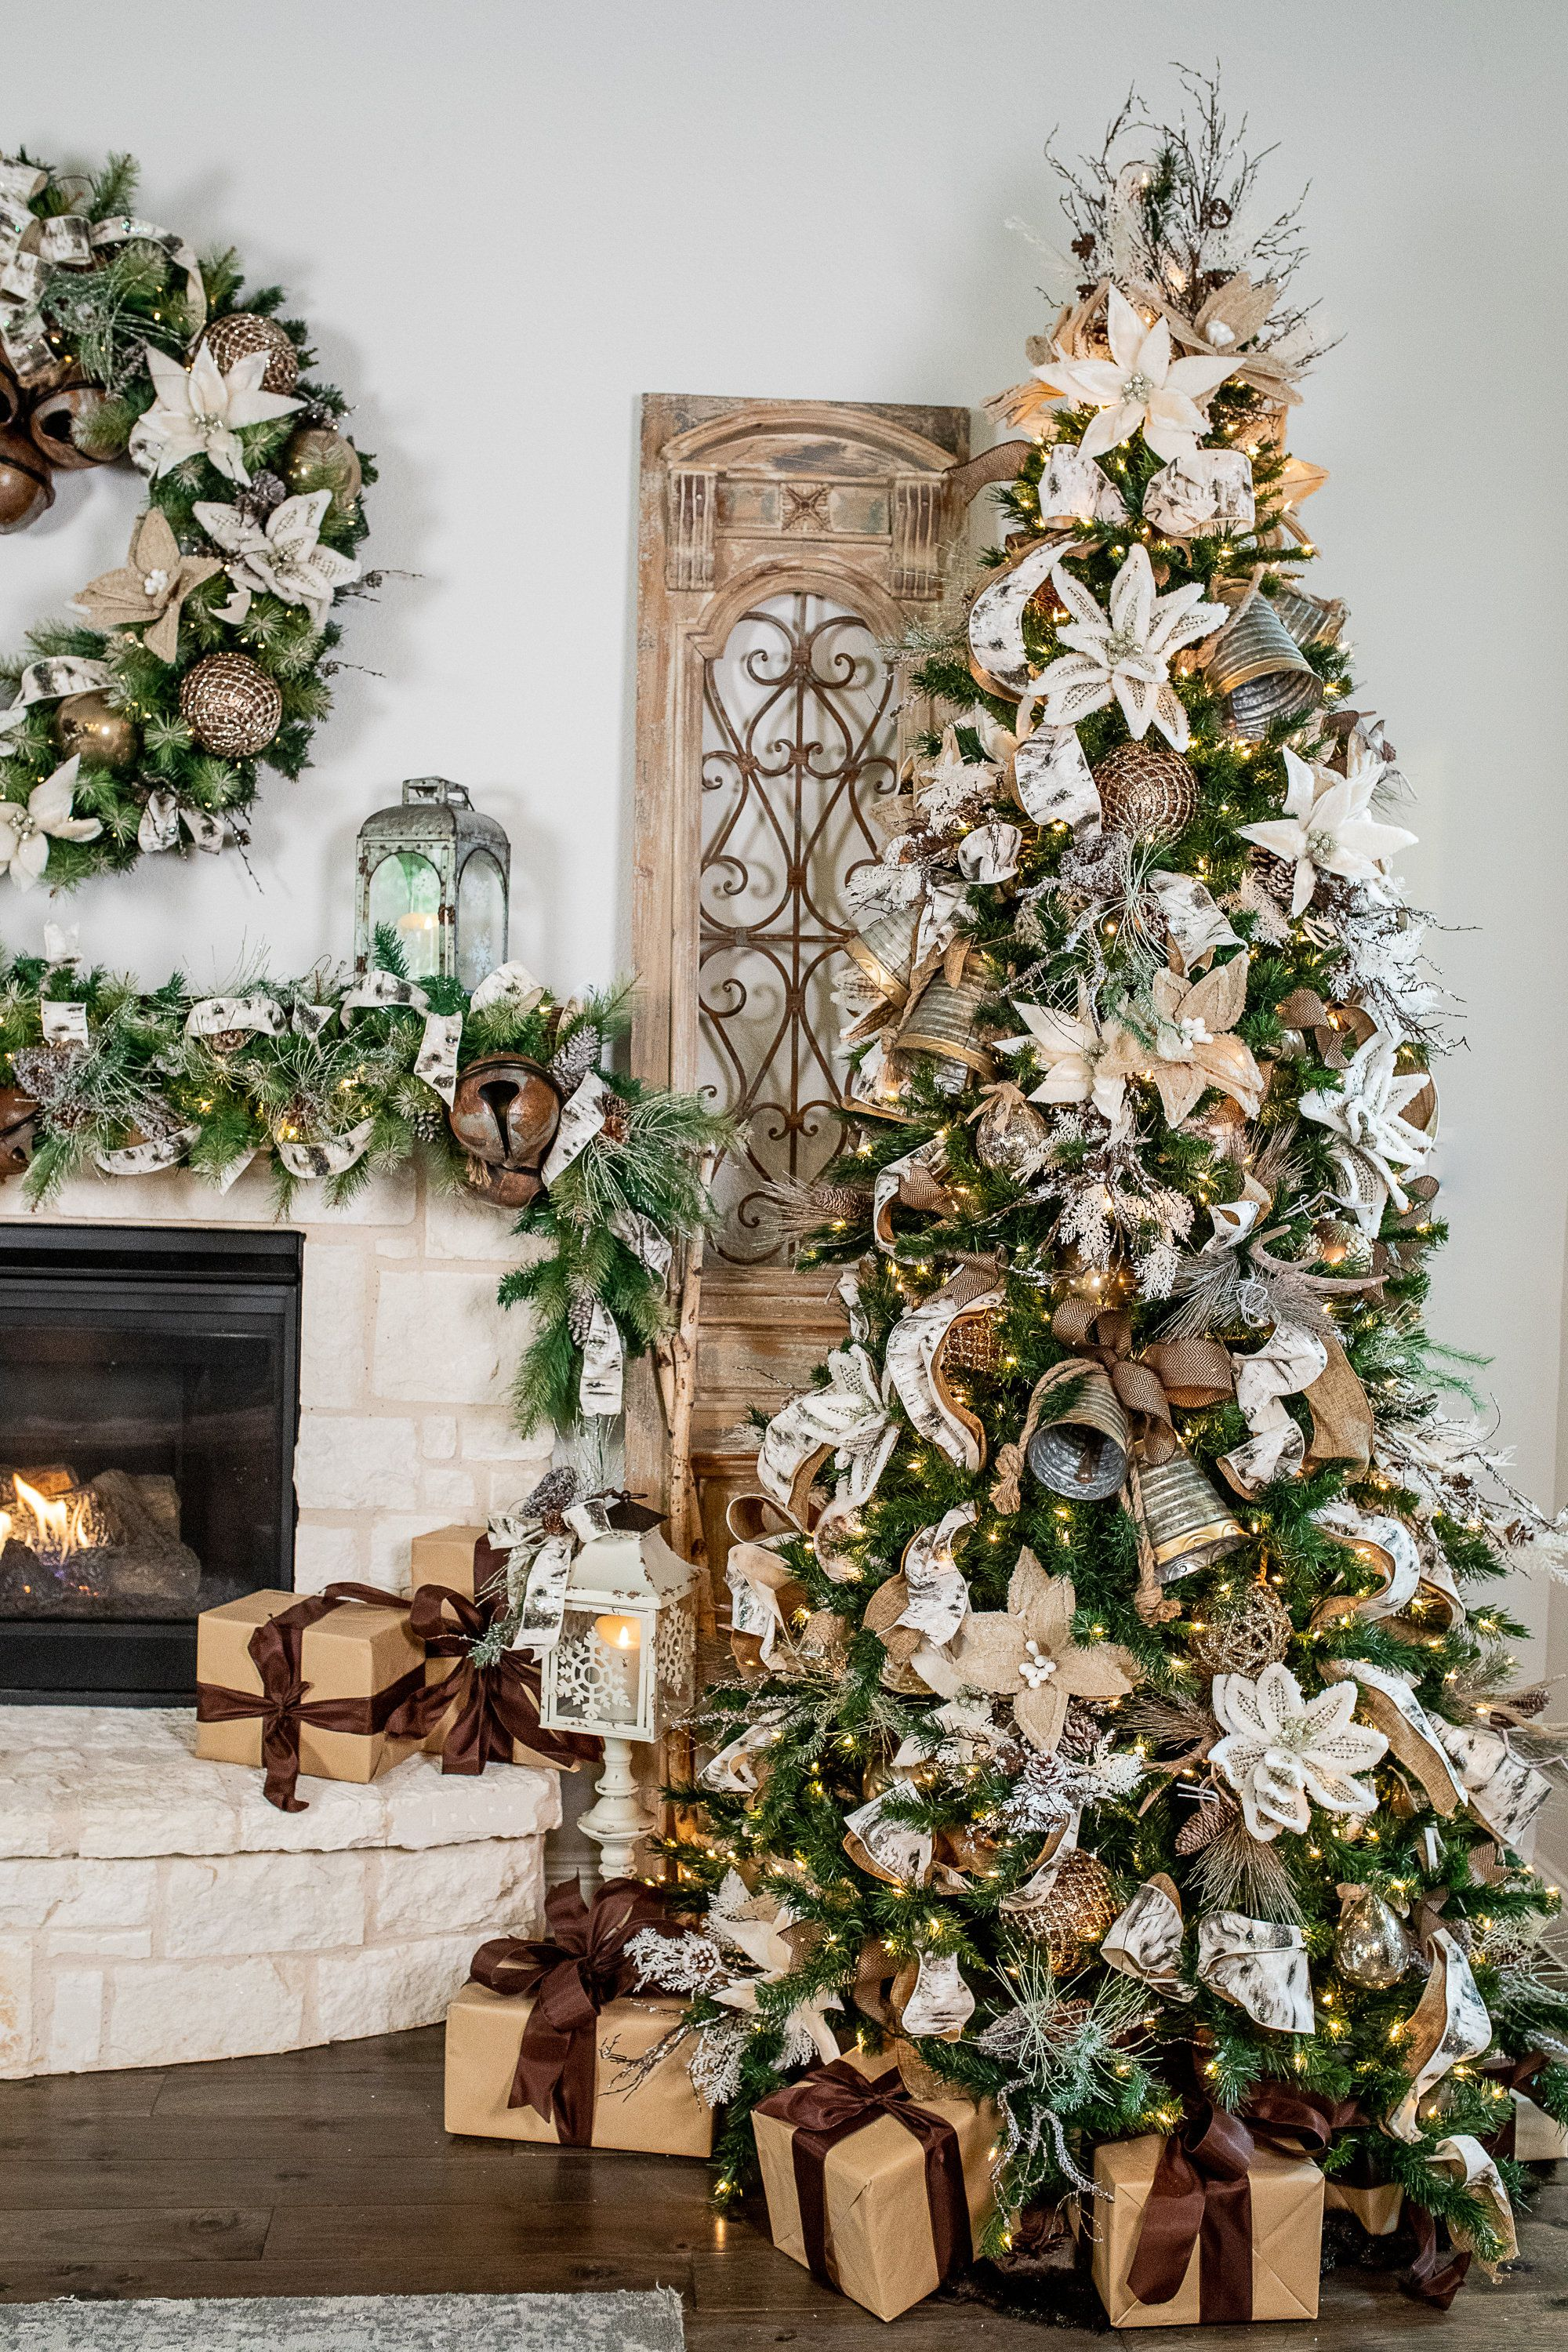 Top Trends In Christmas Home Decor For 2020 Decorator S Warehouse In 2020 Christmas Tree Themes Woodland Christmas Tree Farmhouse Christmas Decor